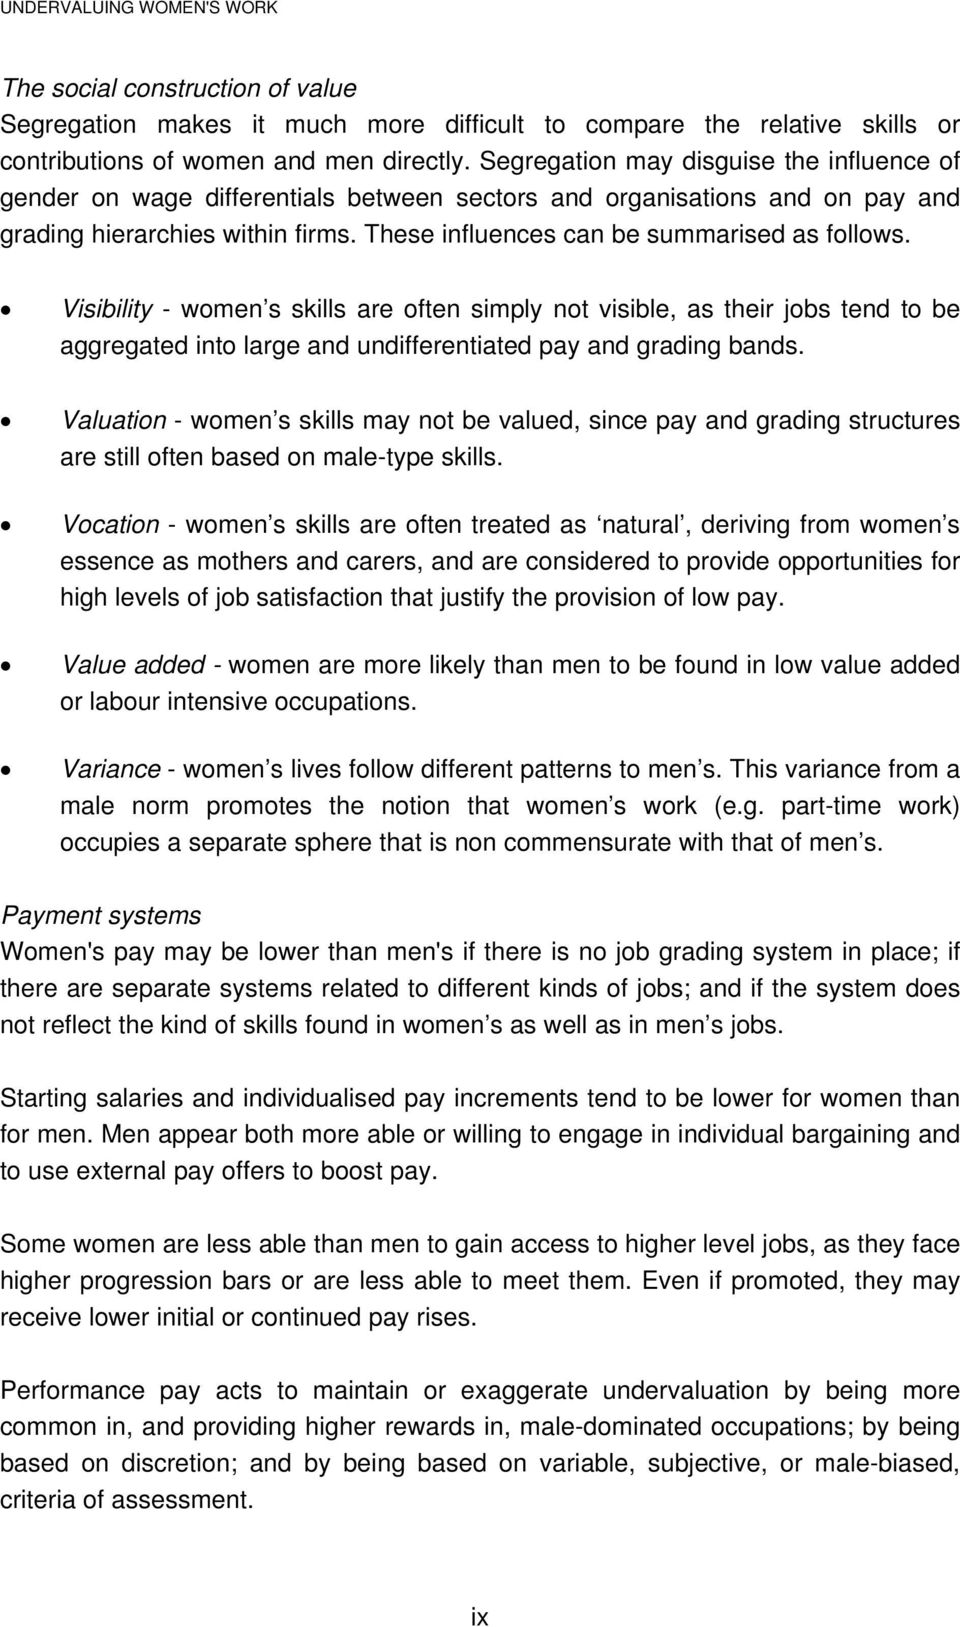 Visibility - women s skills are often simply not visible, as their jobs tend to be aggregated into large and undifferentiated pay and grading bands.